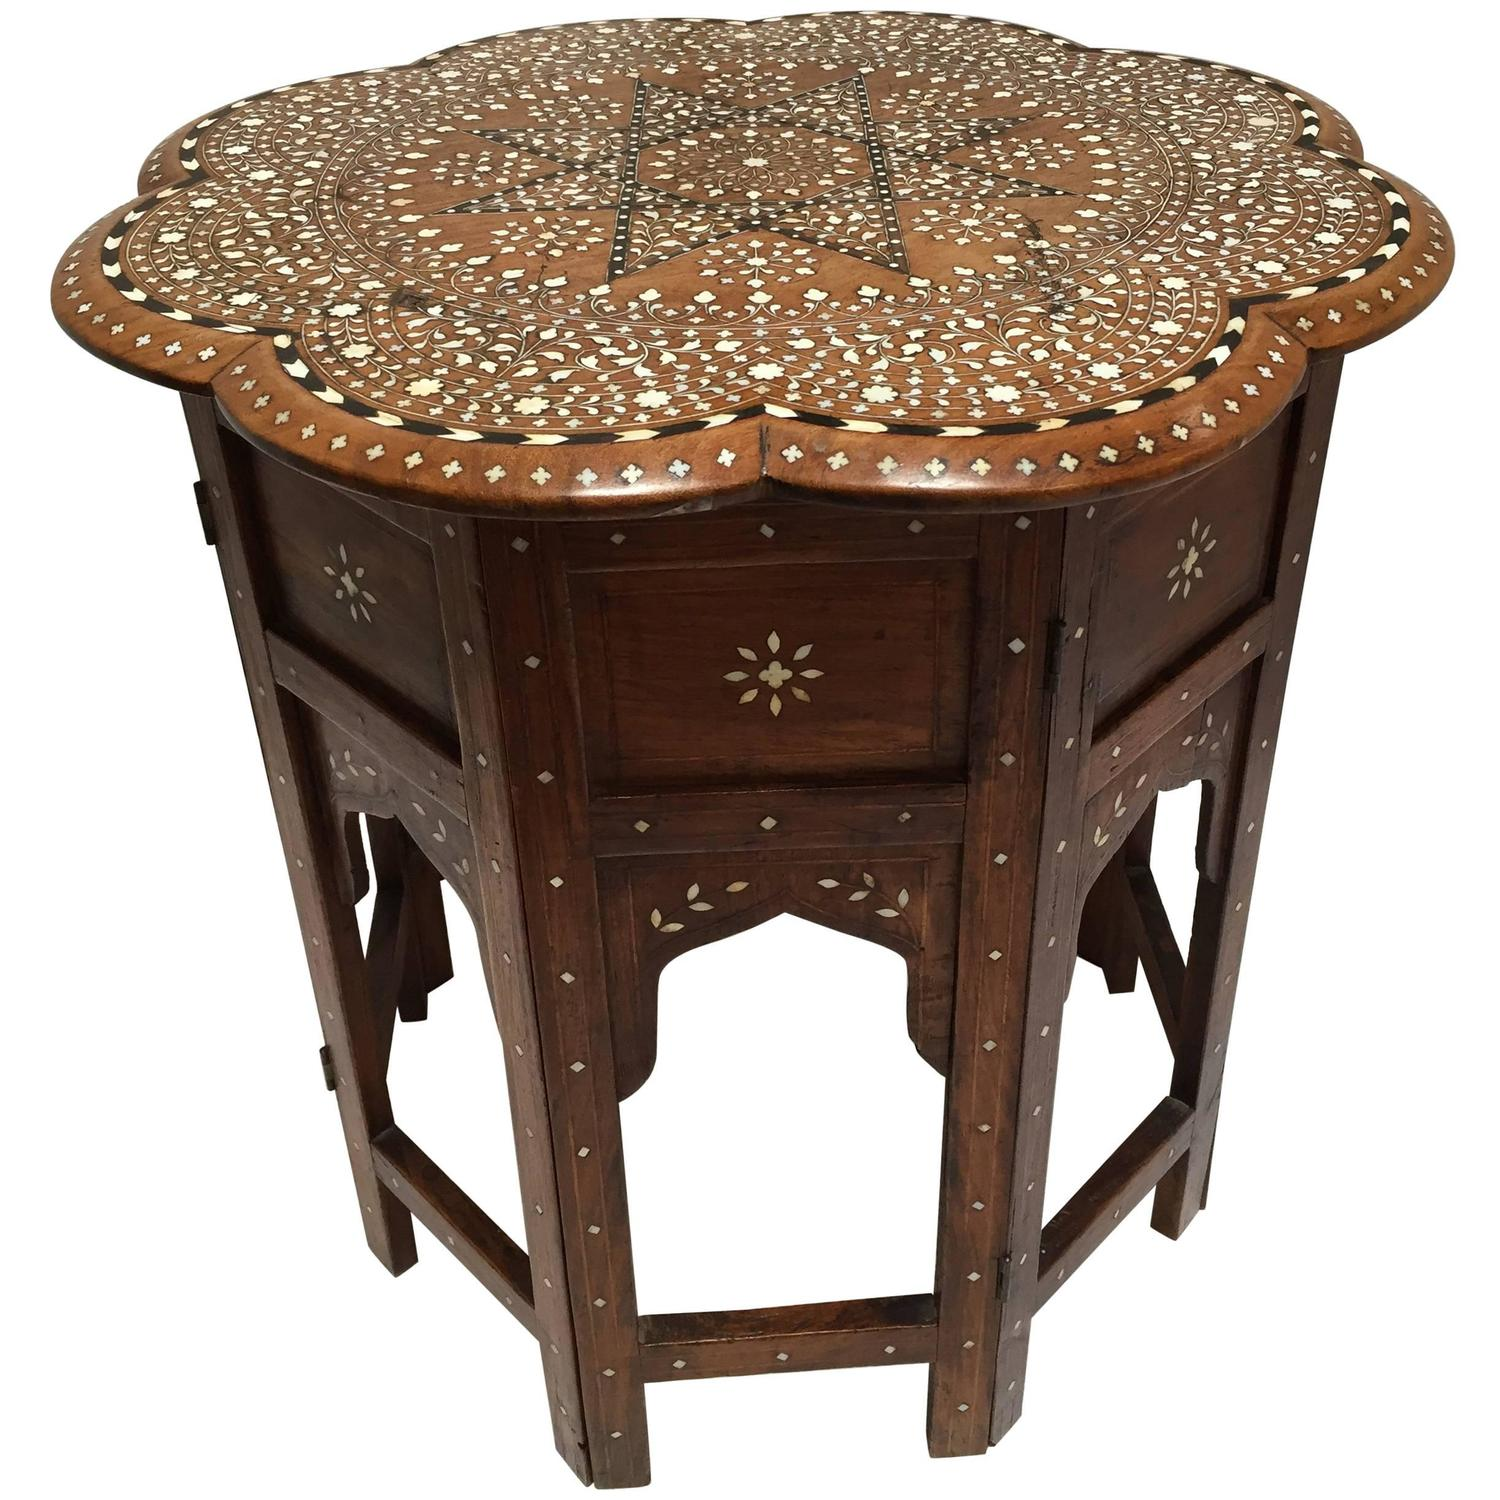 Anglo Indian Inlaid Octagonal Side Table